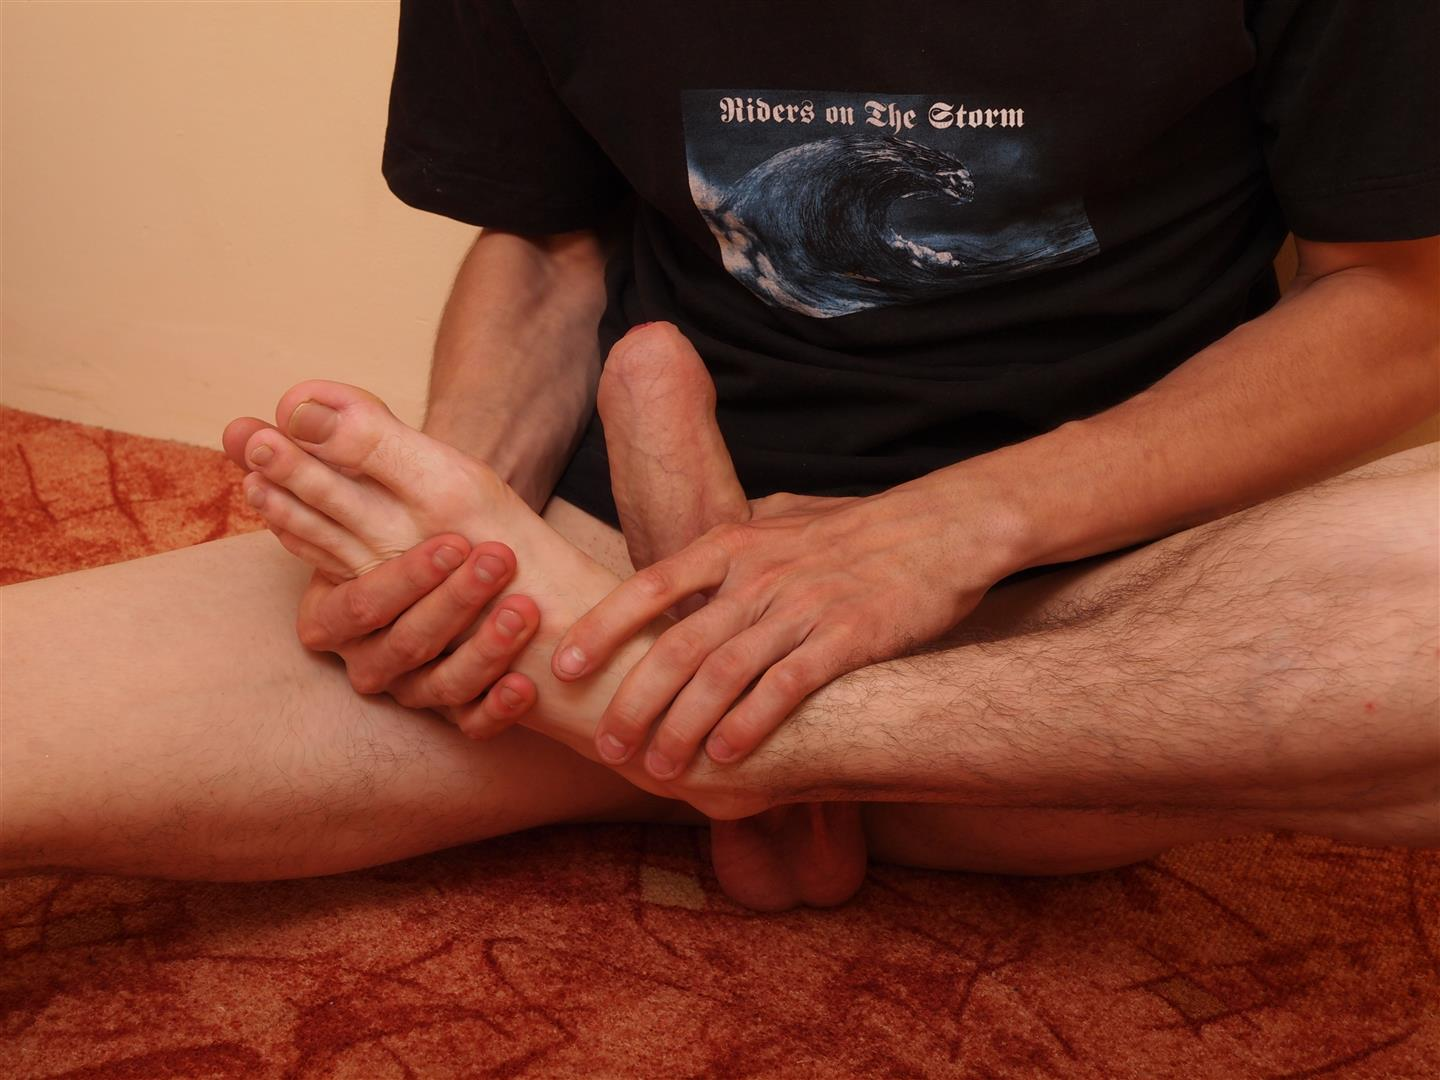 Toe-Sucking-Guys-Eryk-Twink-Playing-With-His-Feet-and-Big-Uncut-Cock-Amateur-Gay-Porn-13 Twink Uses His Shoes and Socks To Jerk His Thick Uncut Cock